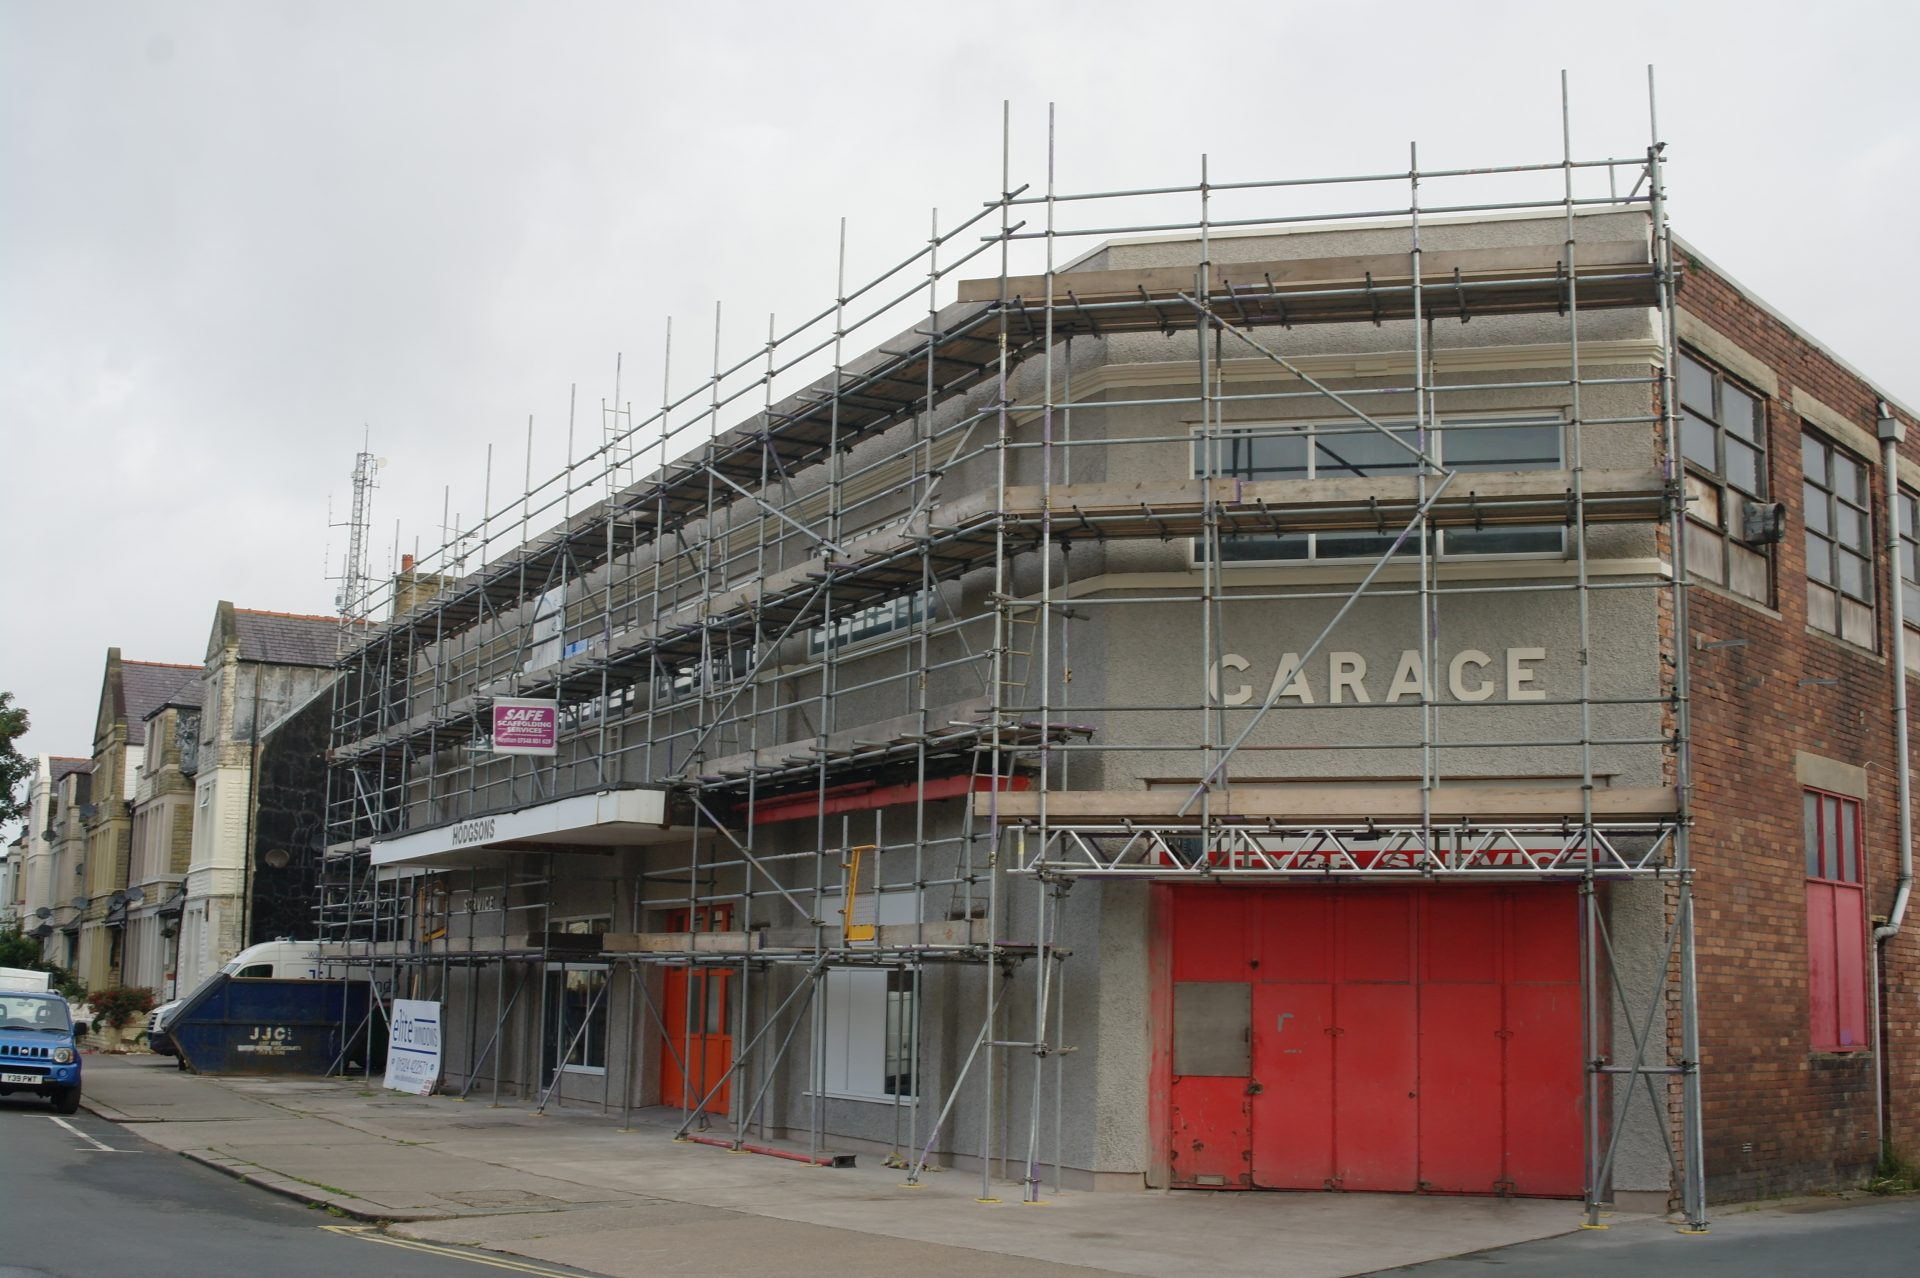 Independant tied scaffold